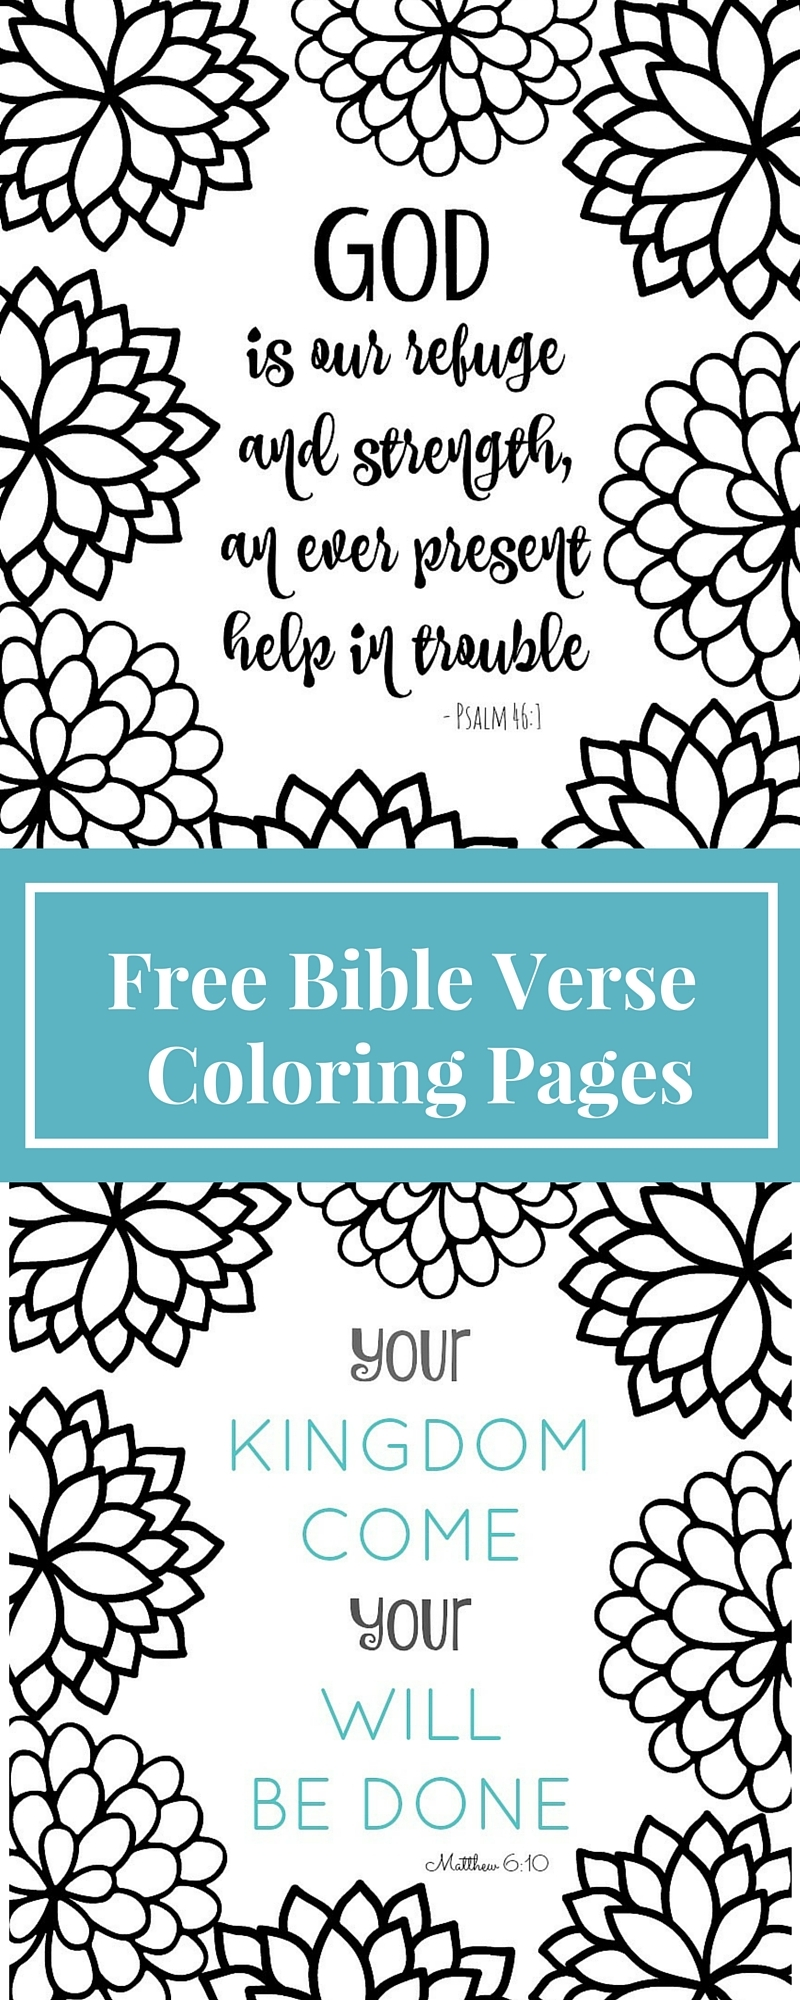 bible verse coloring pages for adults - r=bible quotes for adults